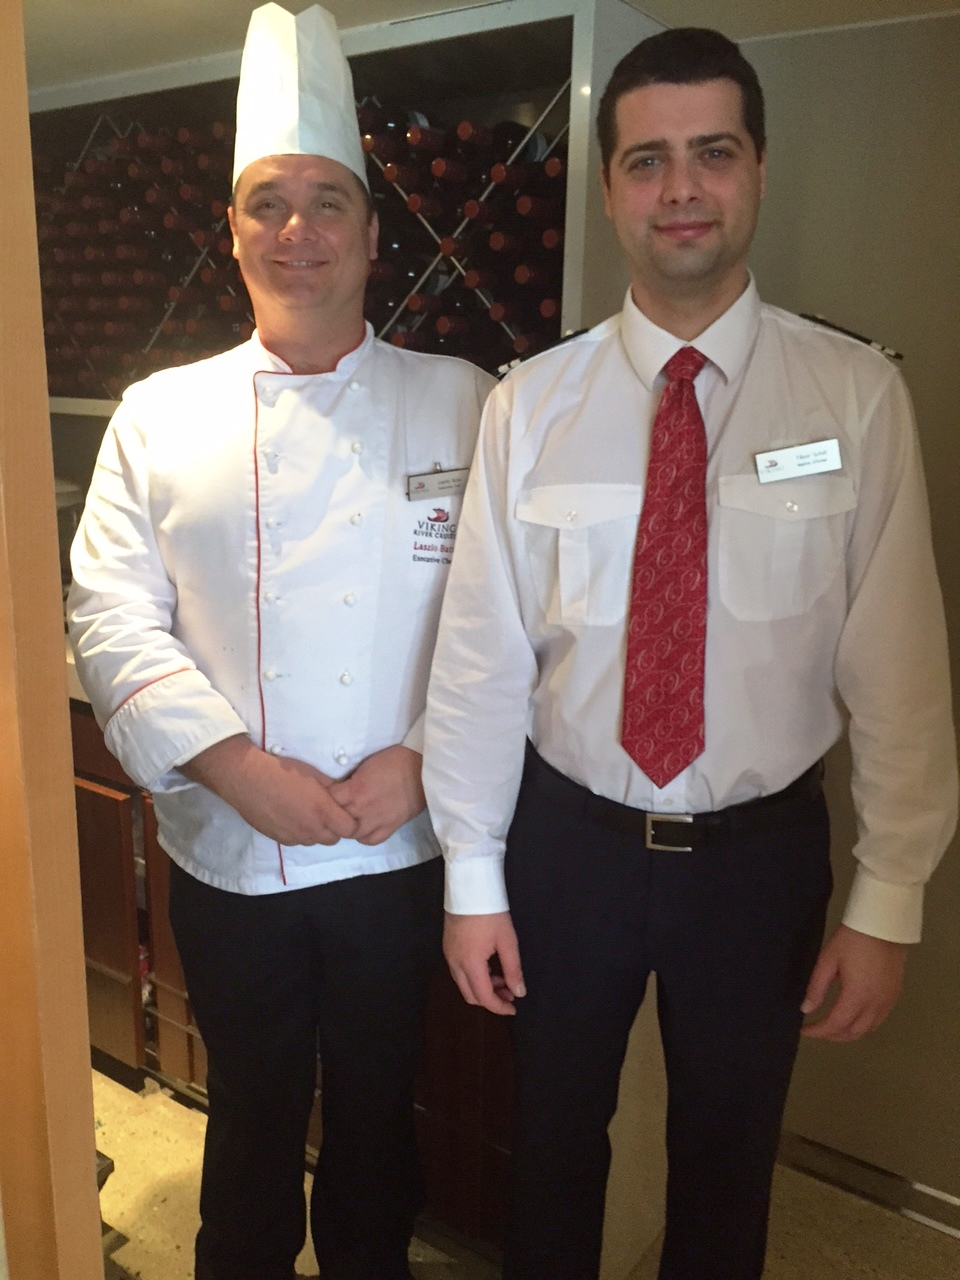 Viking Tor Executive Chef Lazlo and Dining Room Manager Tibor